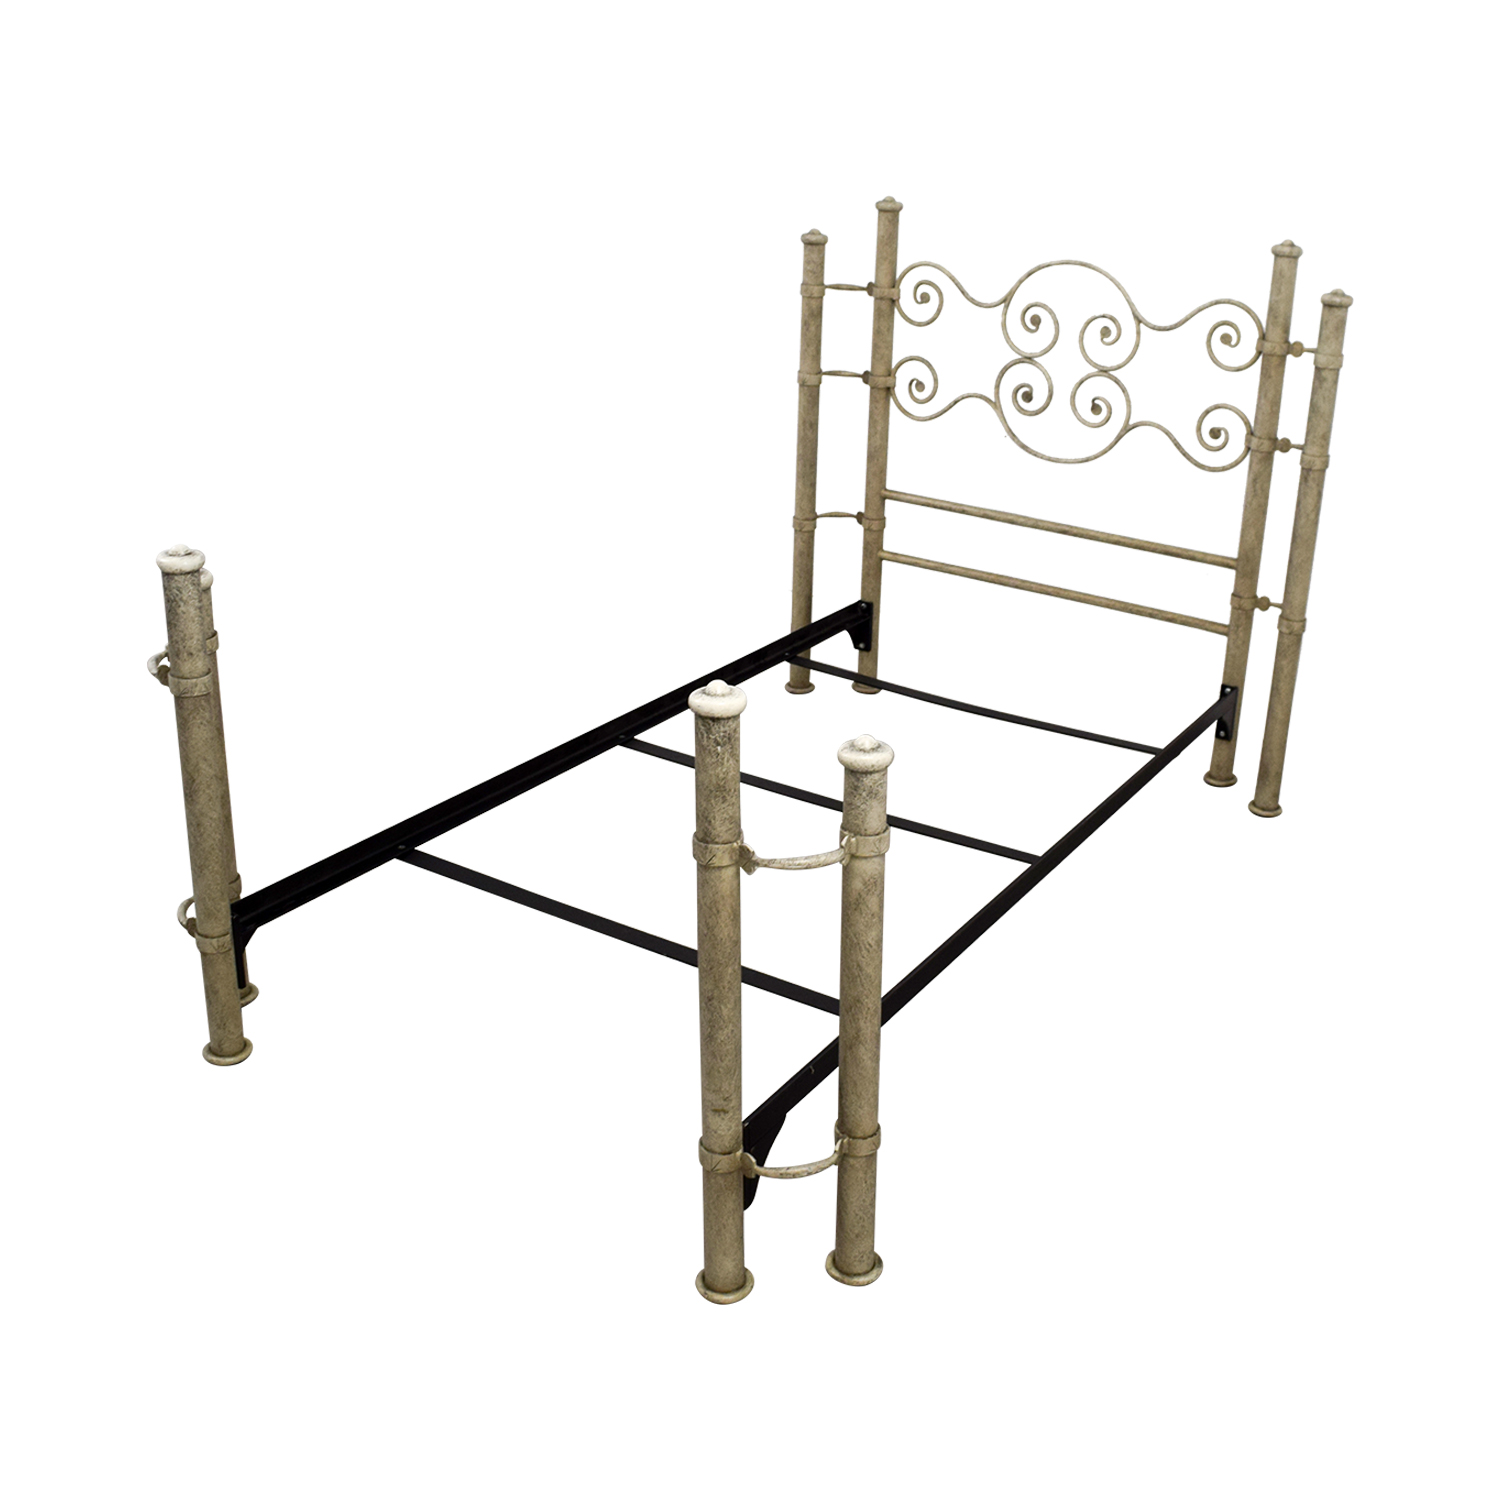 81 off distressed white and metal twin bed frame beds. Black Bedroom Furniture Sets. Home Design Ideas